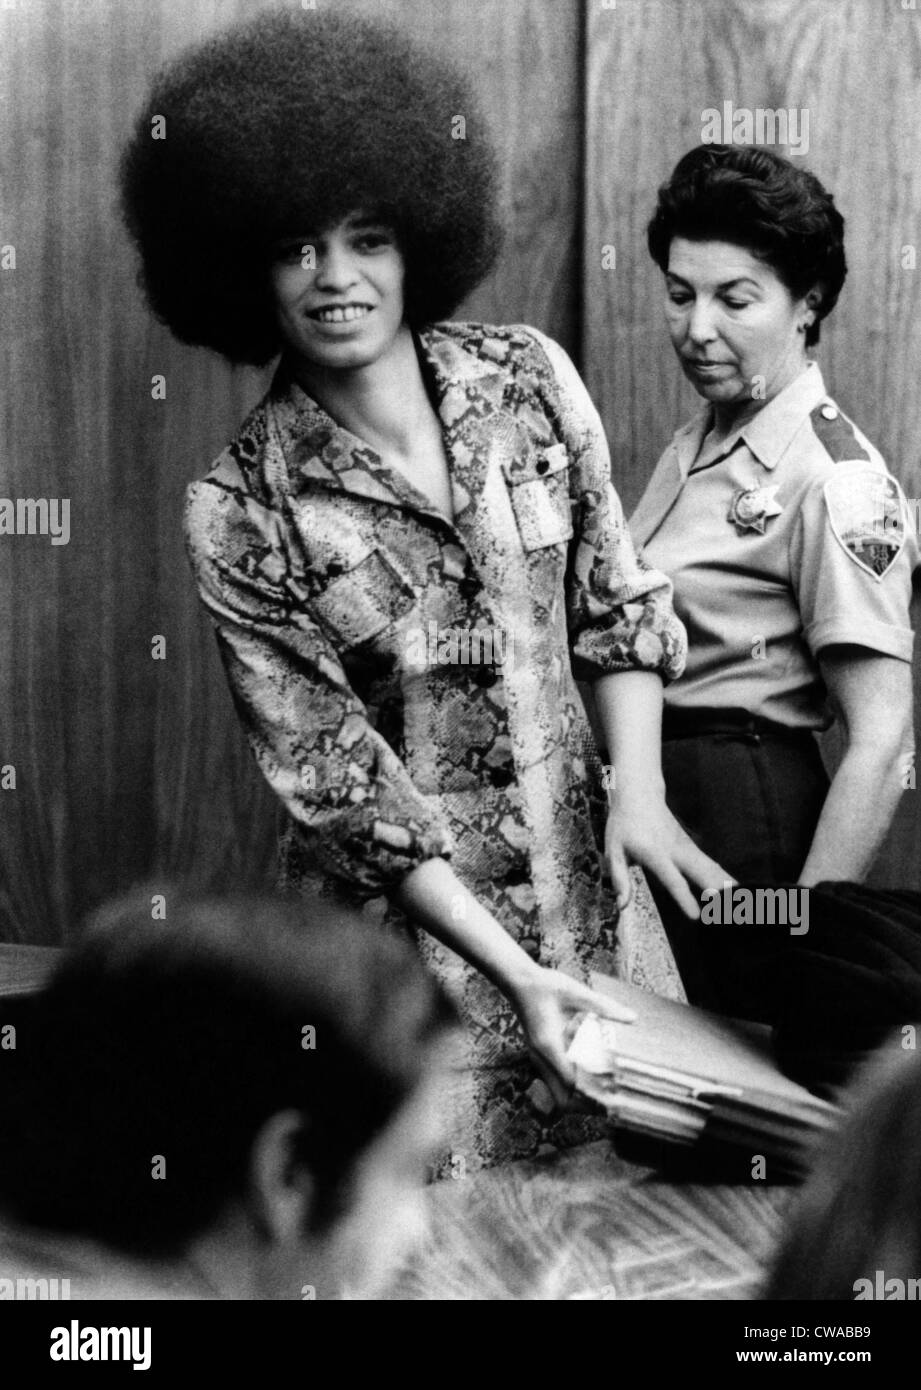 Angela Davis in courtroom. She was charged with conspiracy, kidnap and murder, but eventually acquitted, 1971. Courtesy: - Stock Image